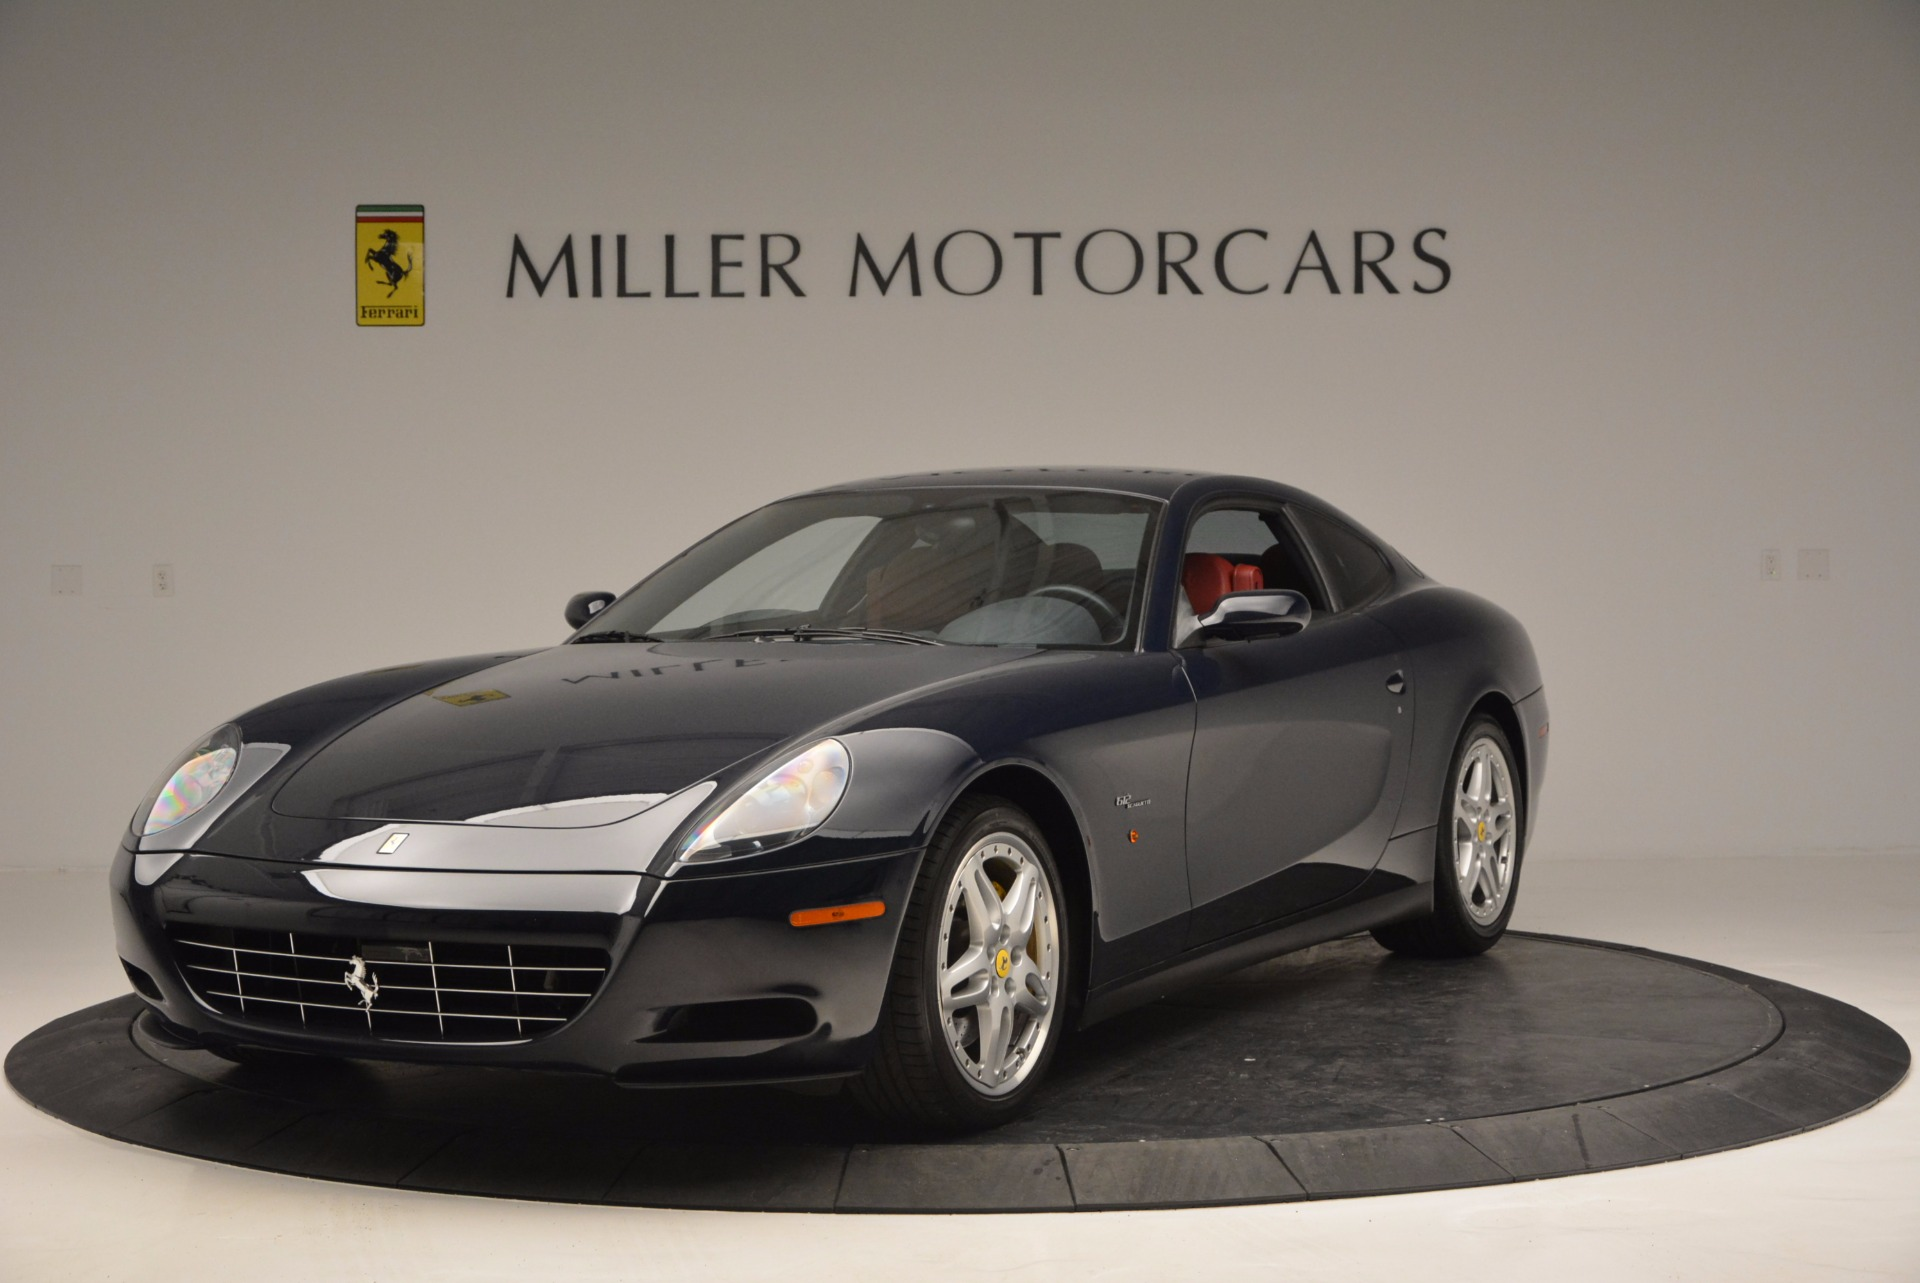 Used 2005 Ferrari 612 Scaglietti 6-Speed Manual for sale Sold at Rolls-Royce Motor Cars Greenwich in Greenwich CT 06830 1